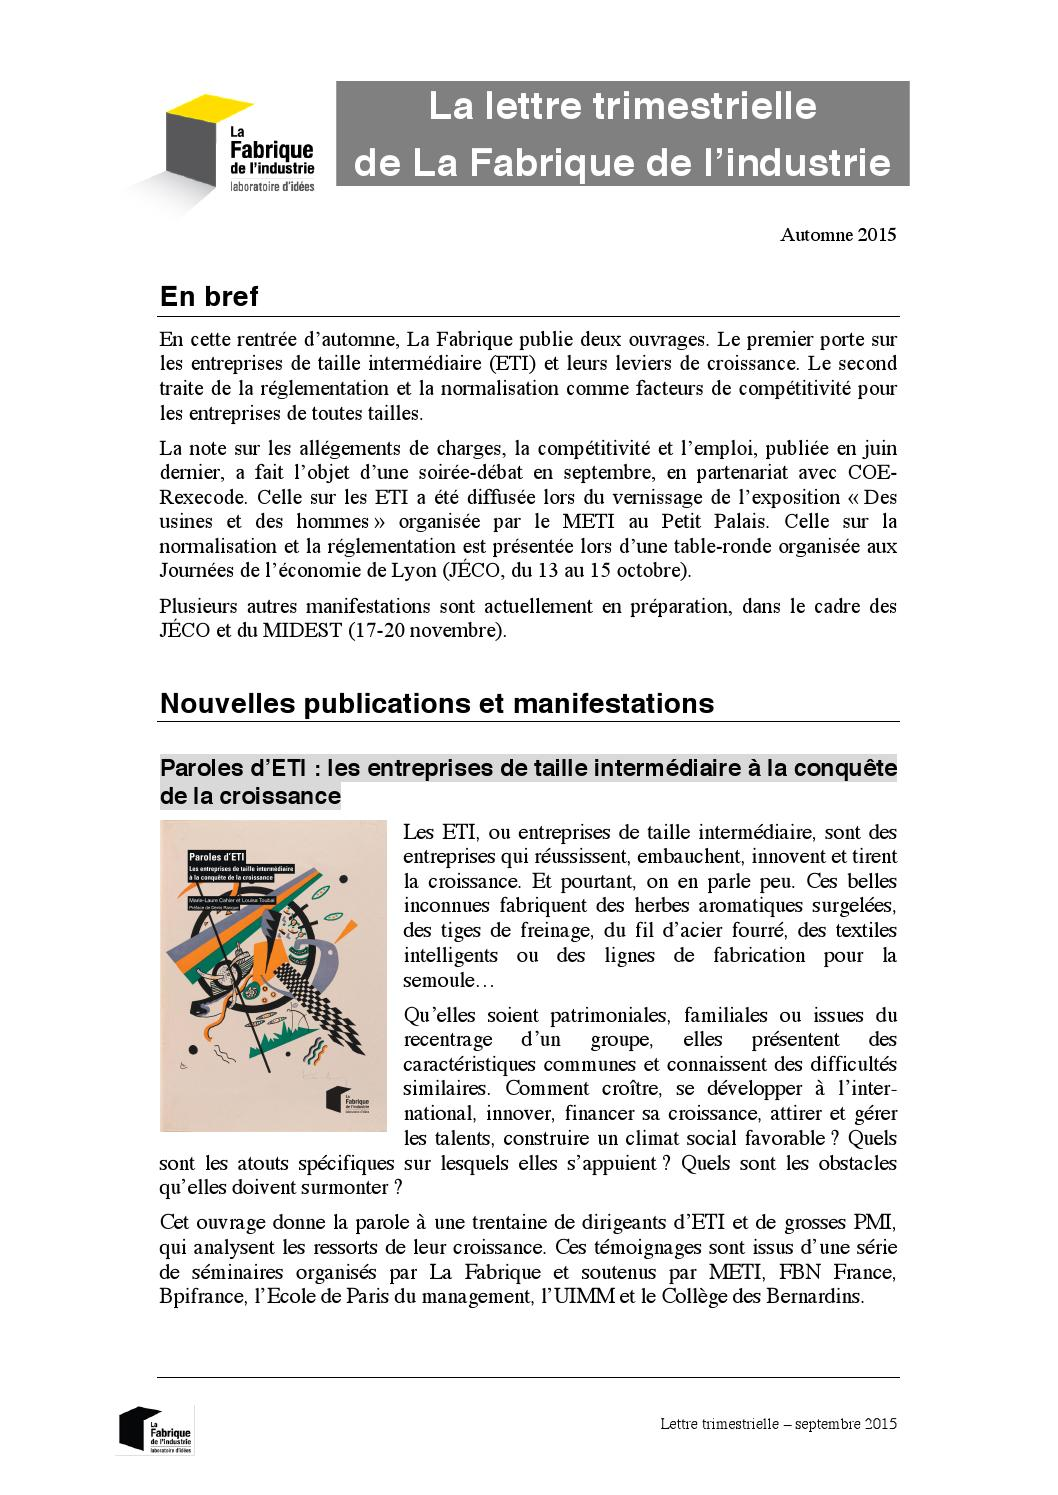 la lettre trimestrielle de la fabrique octobre 2015 by la fabrique de l 39 industrie issuu. Black Bedroom Furniture Sets. Home Design Ideas